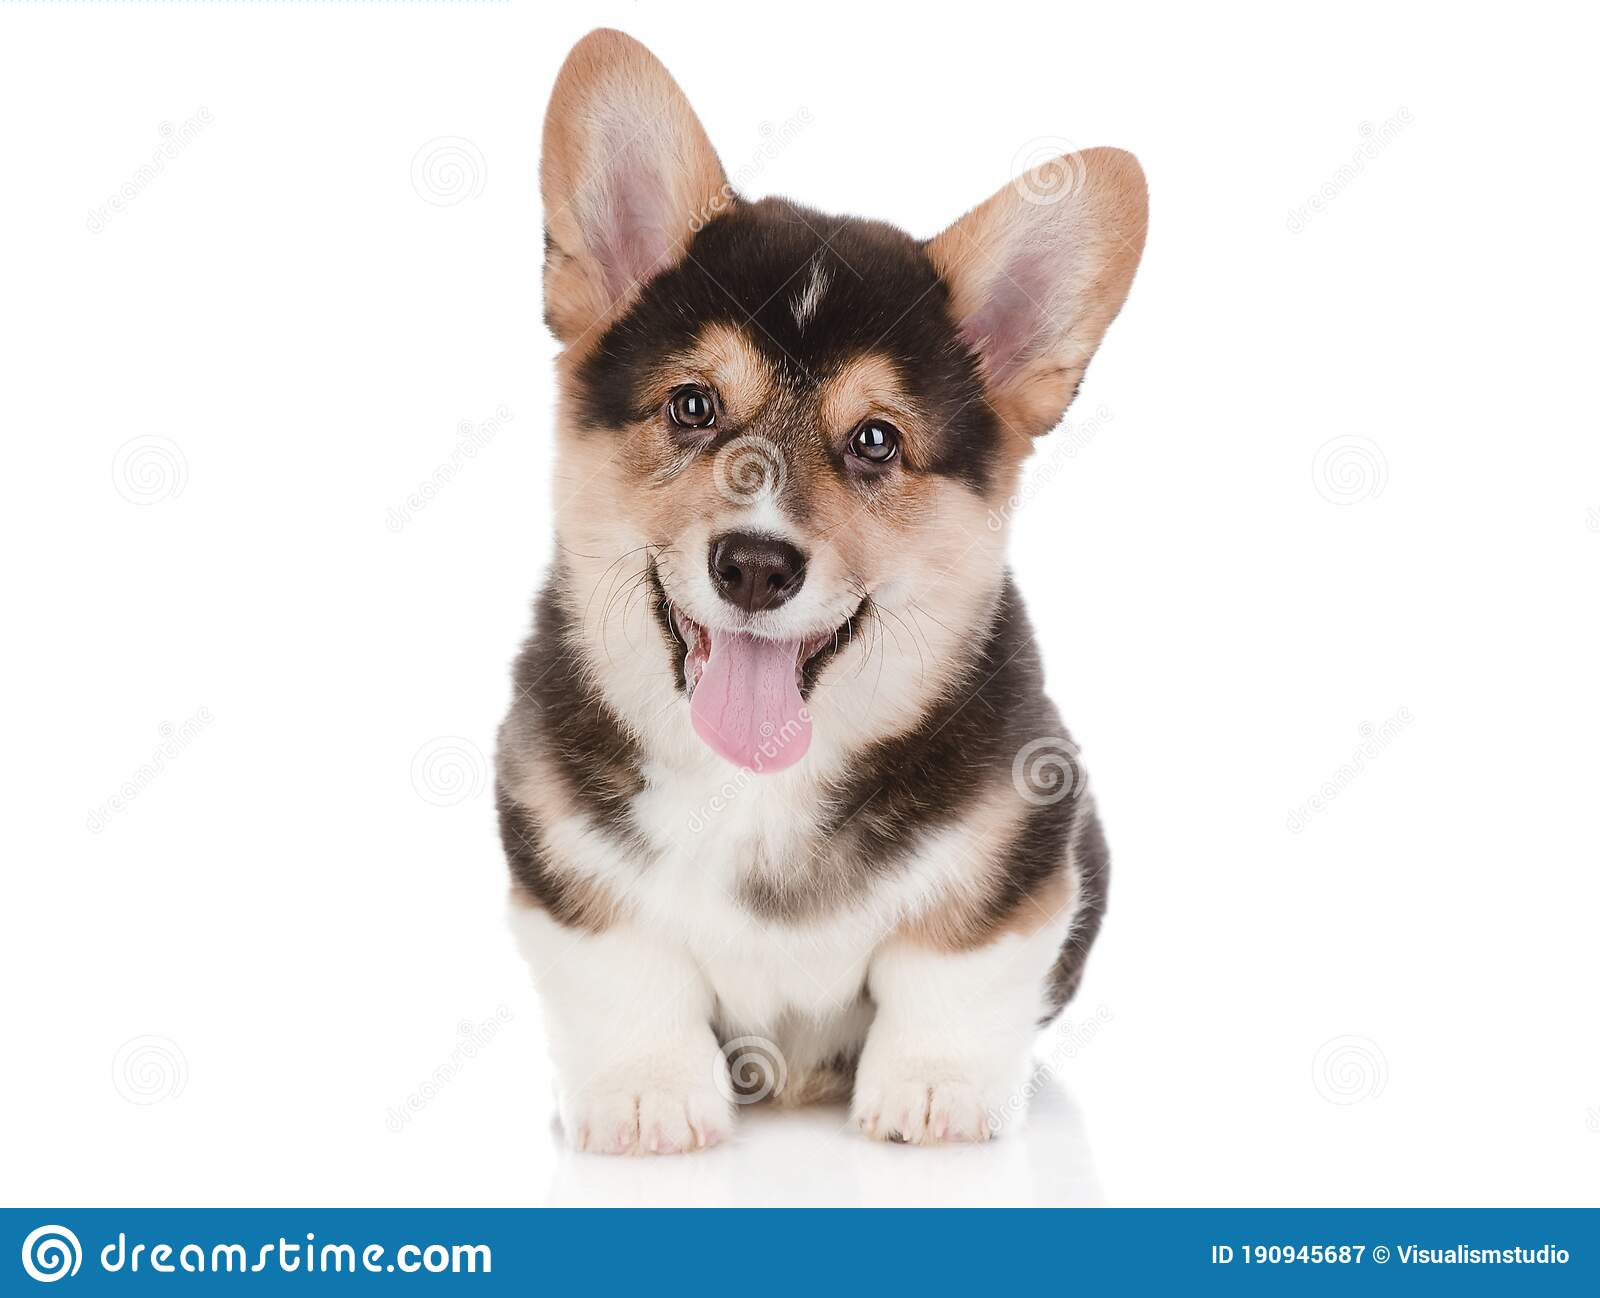 Dog Puppies Funny Smiling Puppy Dog A Paw And Cute Puppy On White Stock Image Image Of Cartoon Doggy 190945687